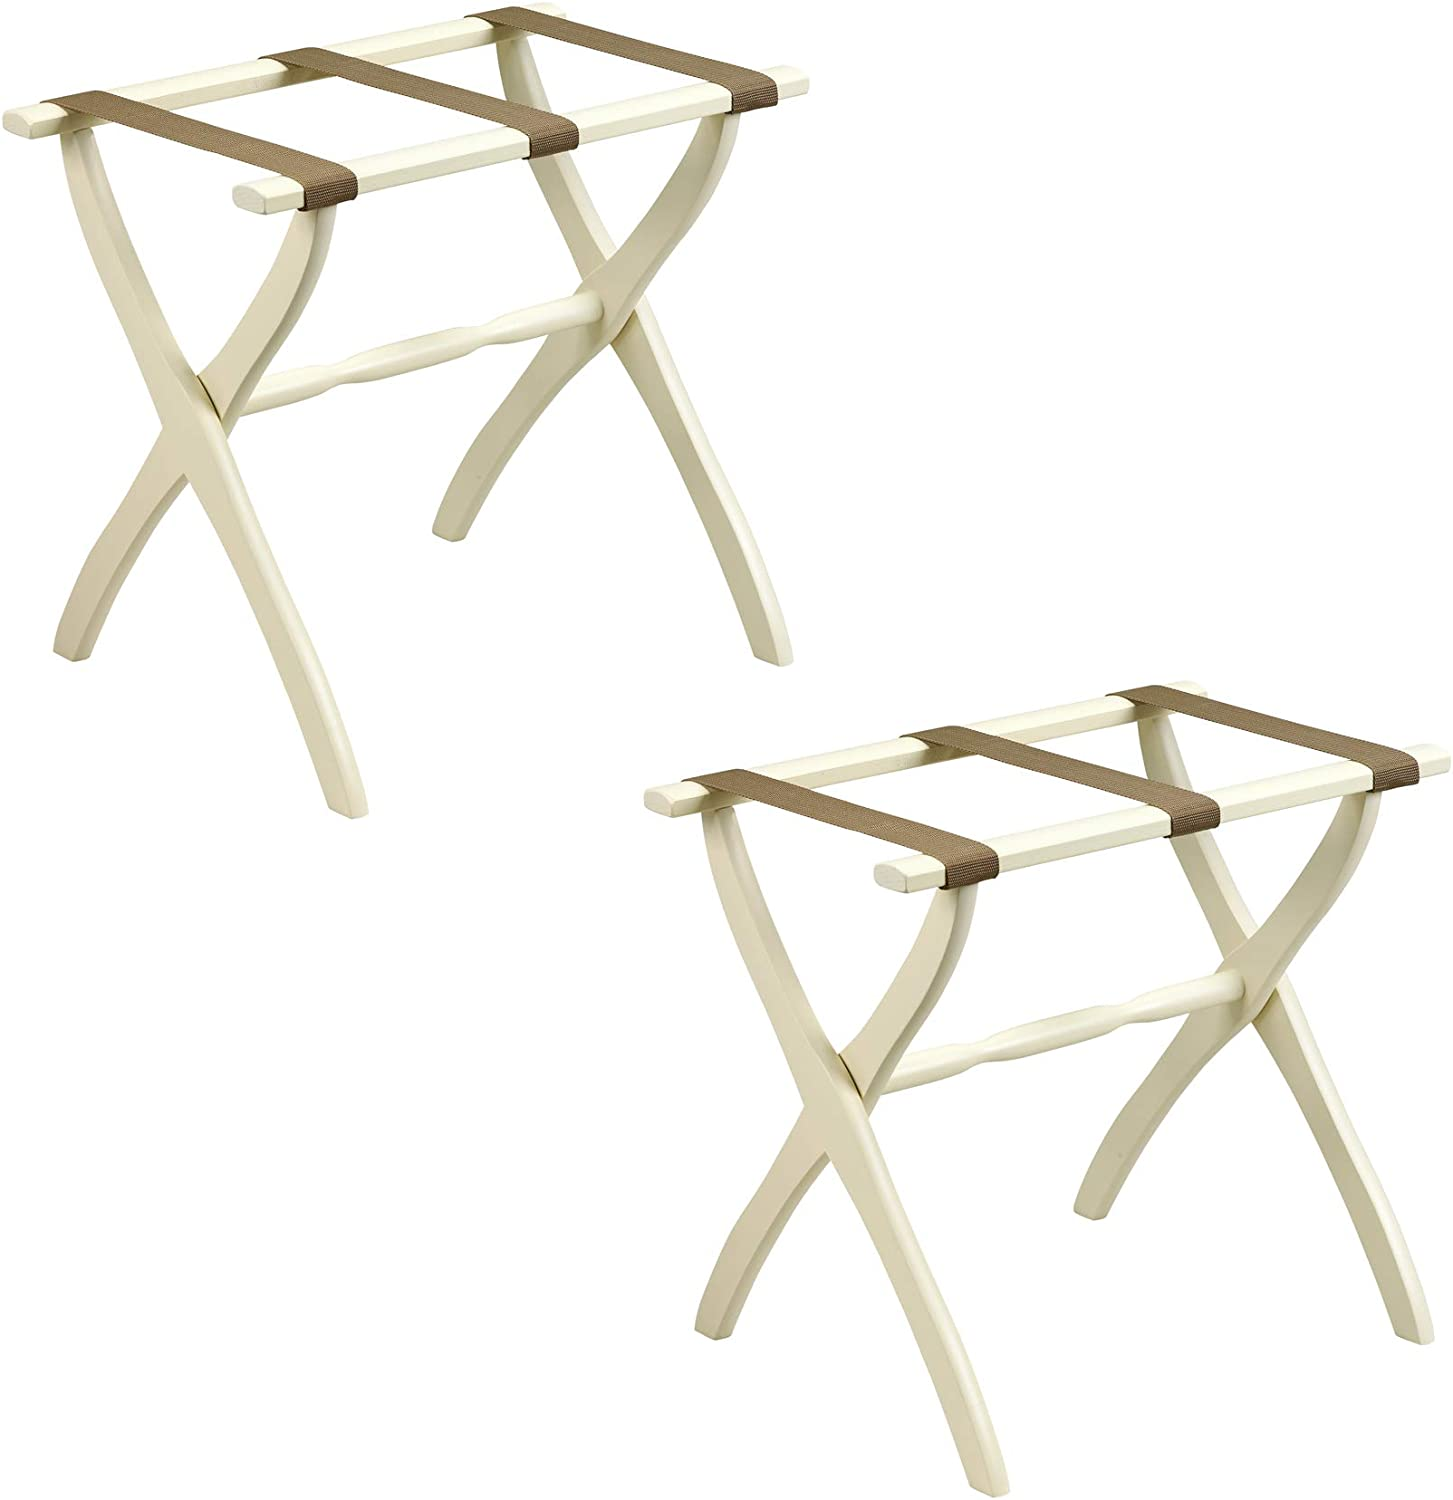 Gate House Furniture 2-Pack Ivory Contour Leg Wood Luggage Rack 3 Beige Nylon Straps